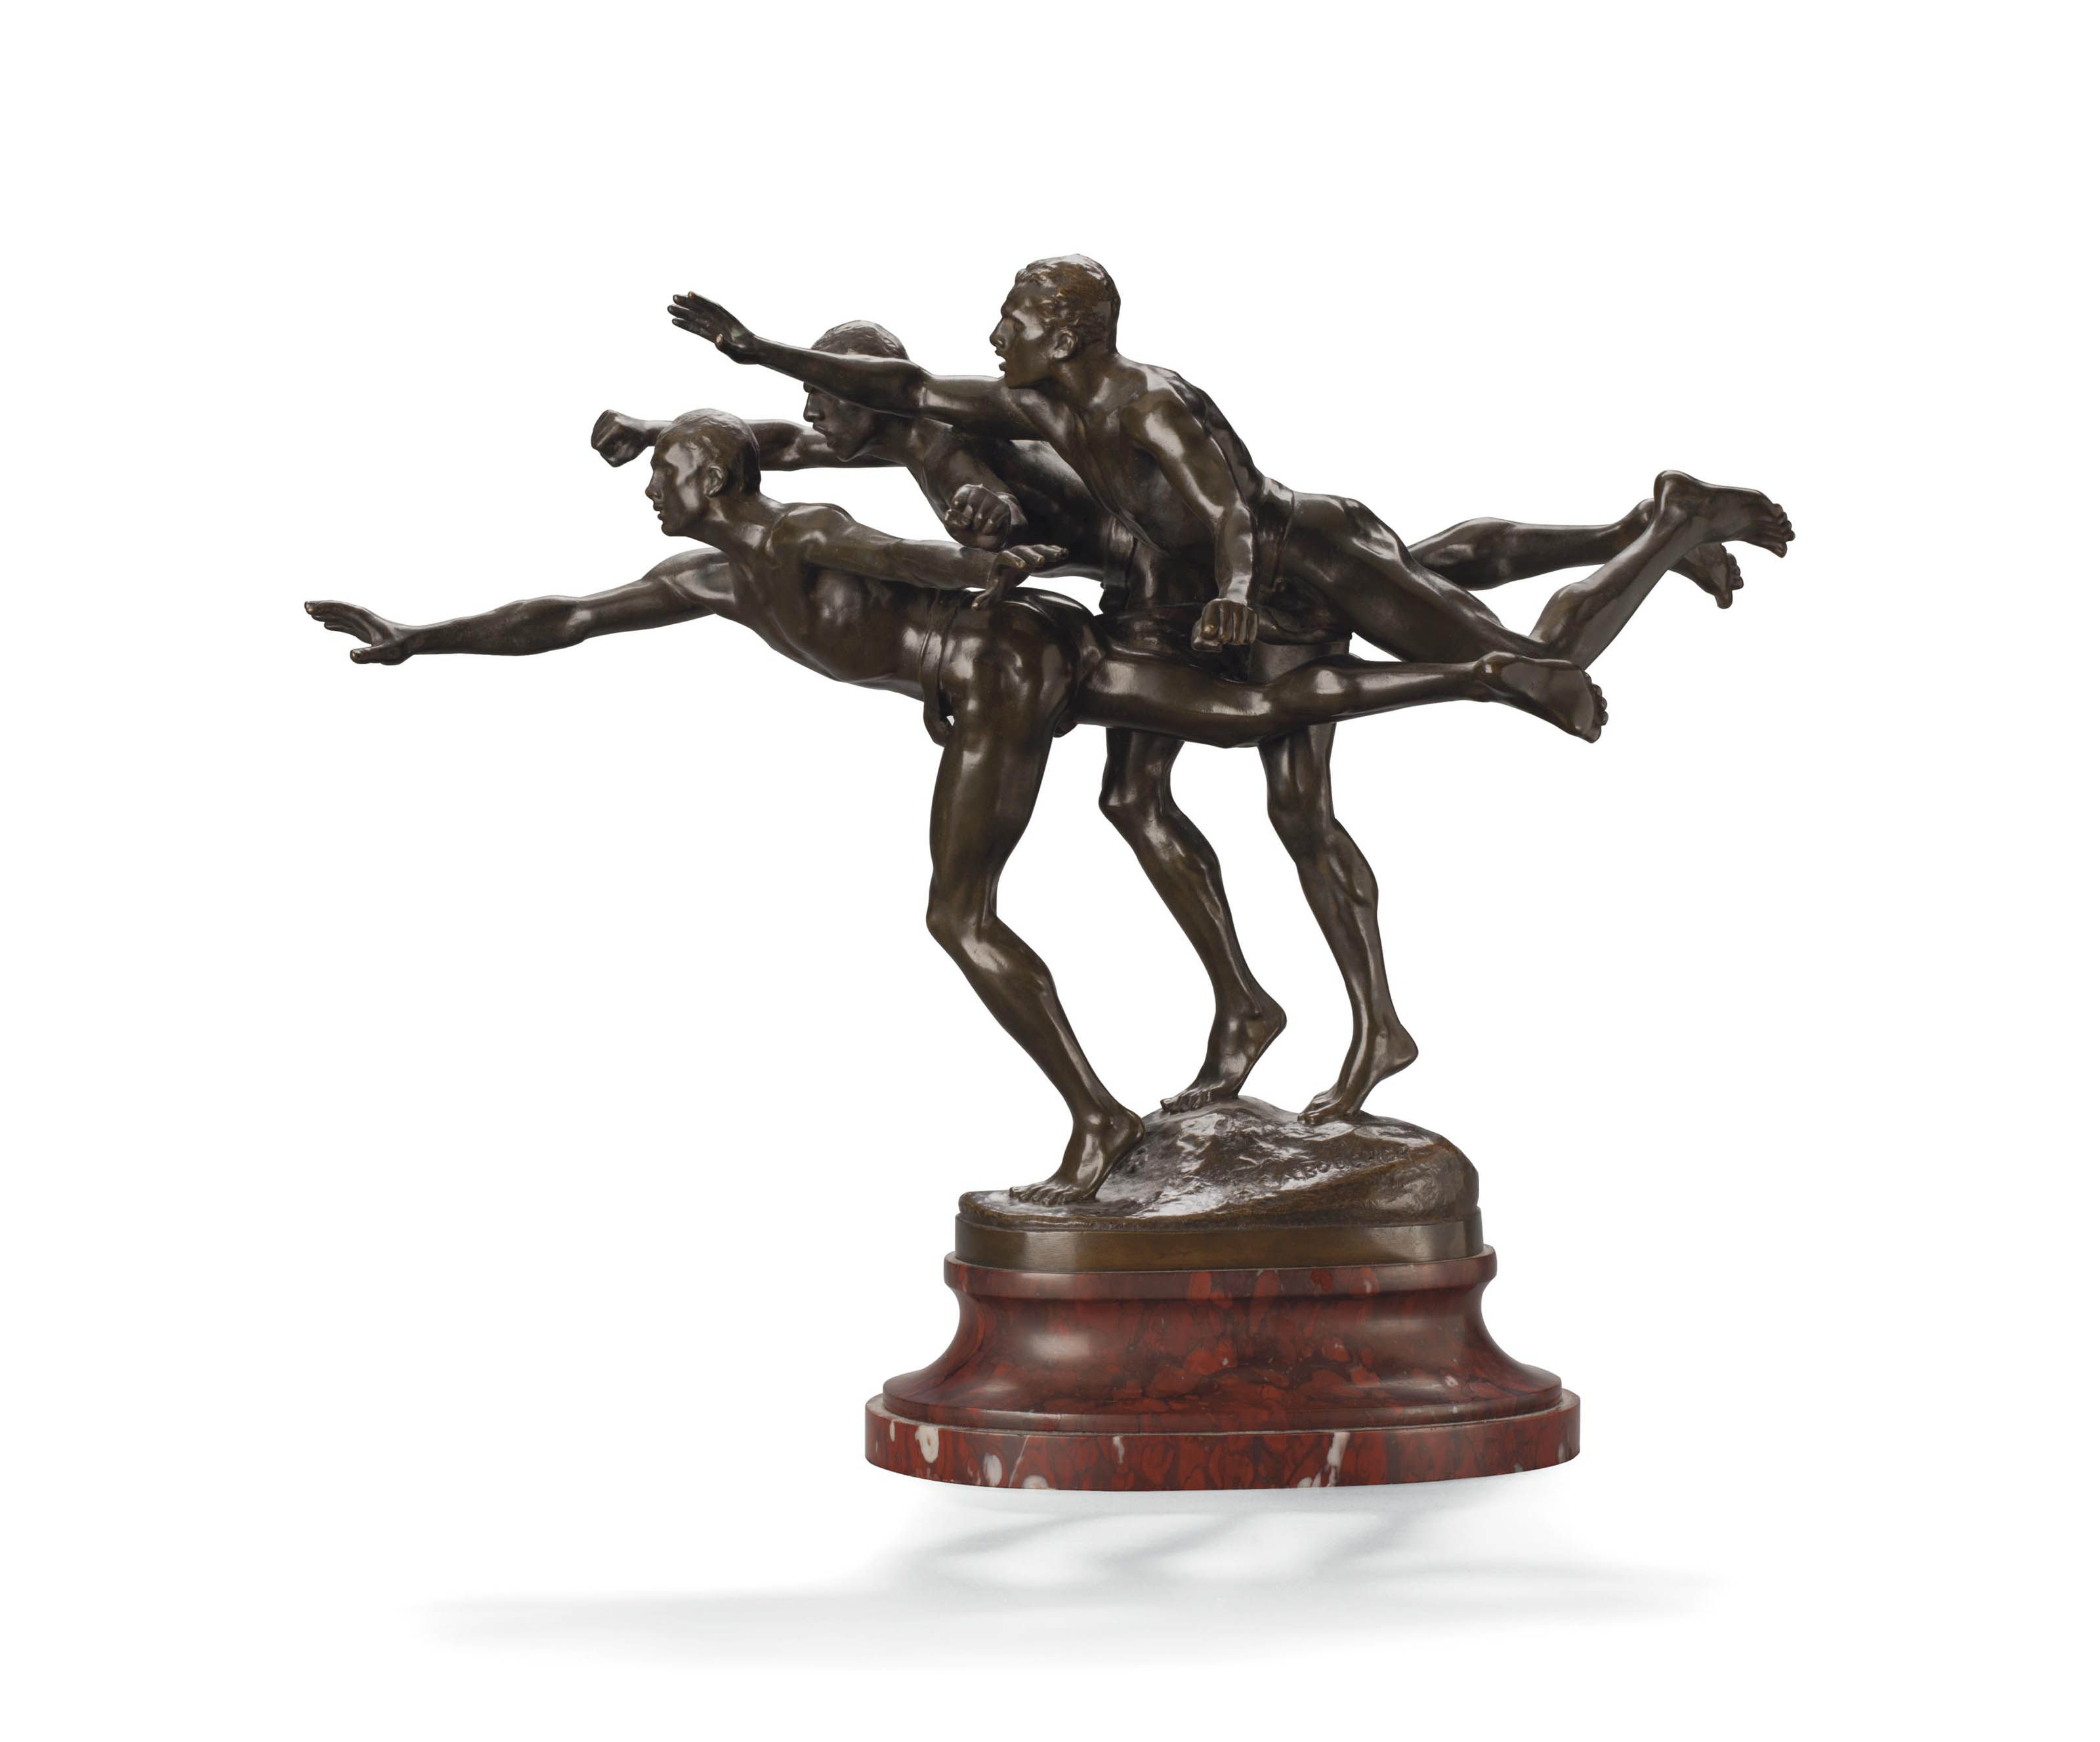 A FRENCH PATINATED-BRONZE FIGURAL GROUP, ENTITLED 'AU BUT'